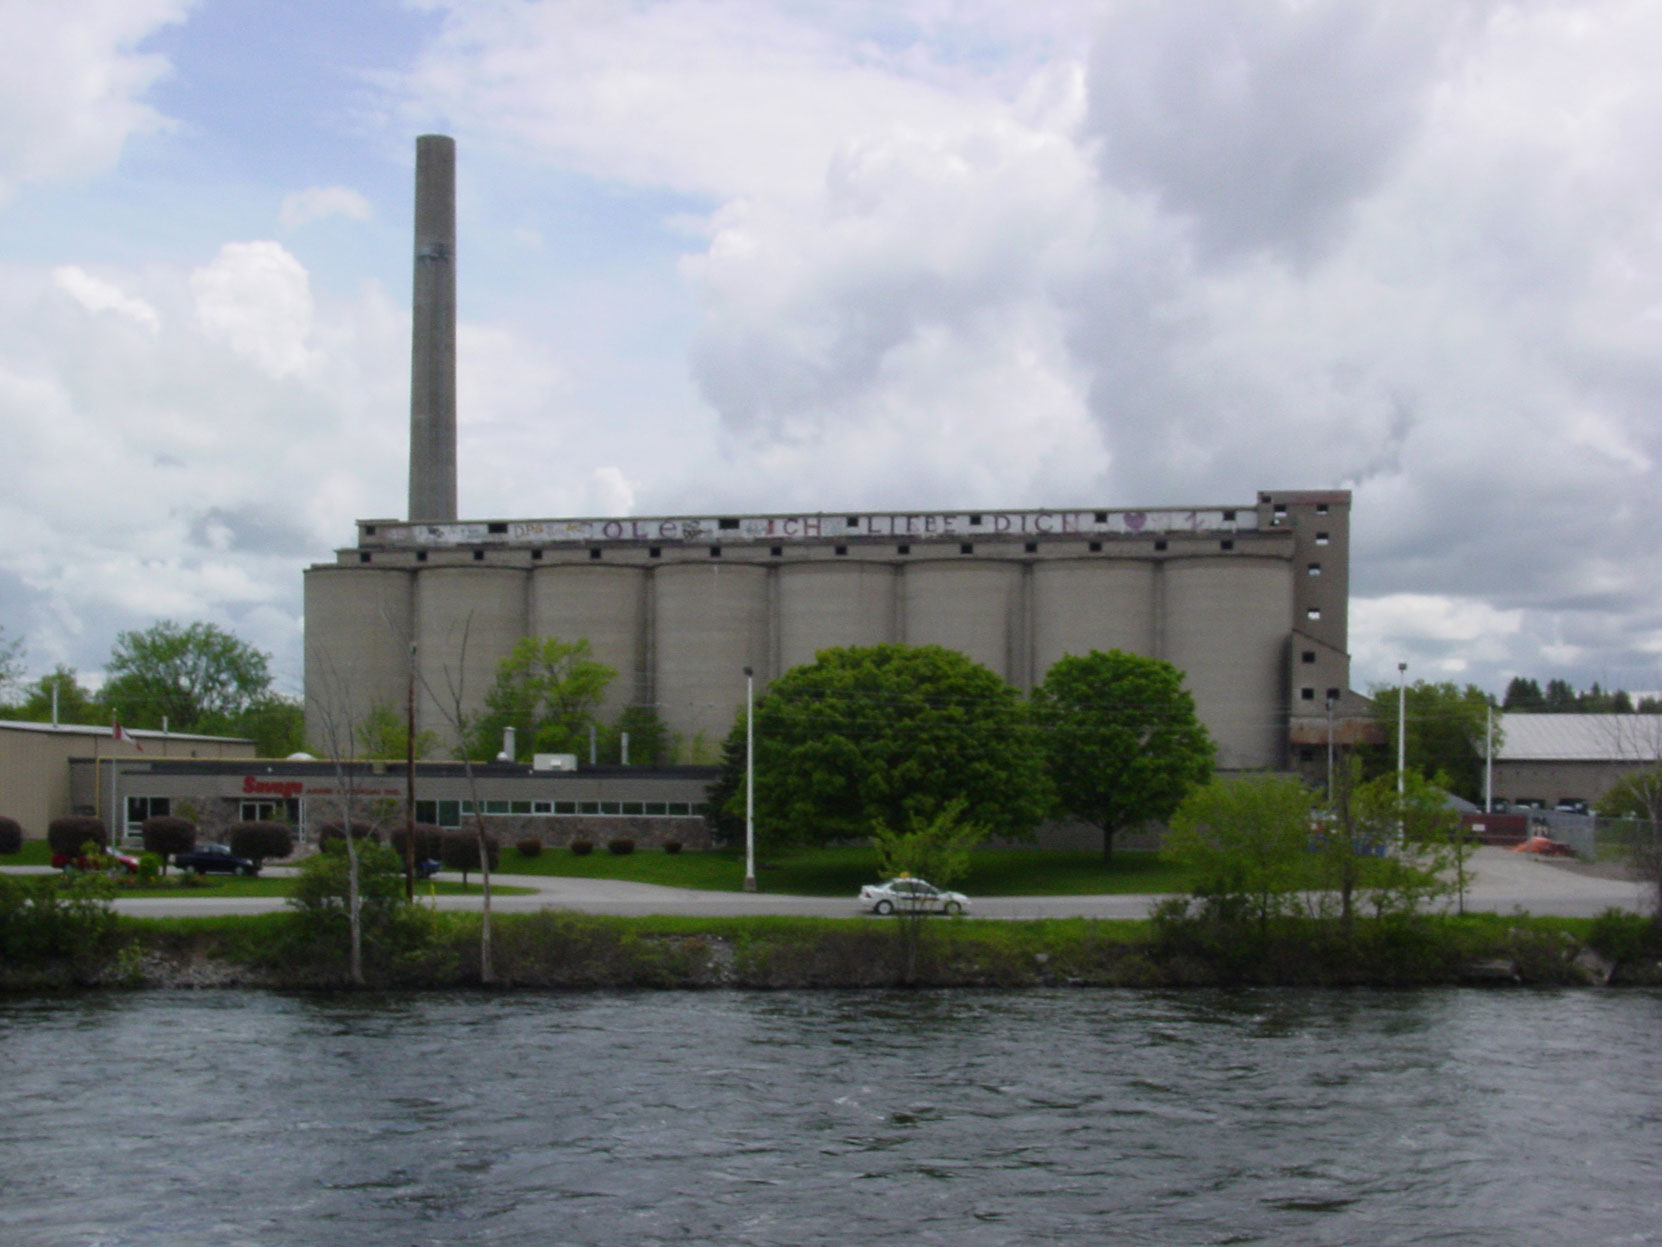 The remains of the Canada Cement Company plant at Lakefield, Ontario in 2003. It has since been demolished (Photo by Author)